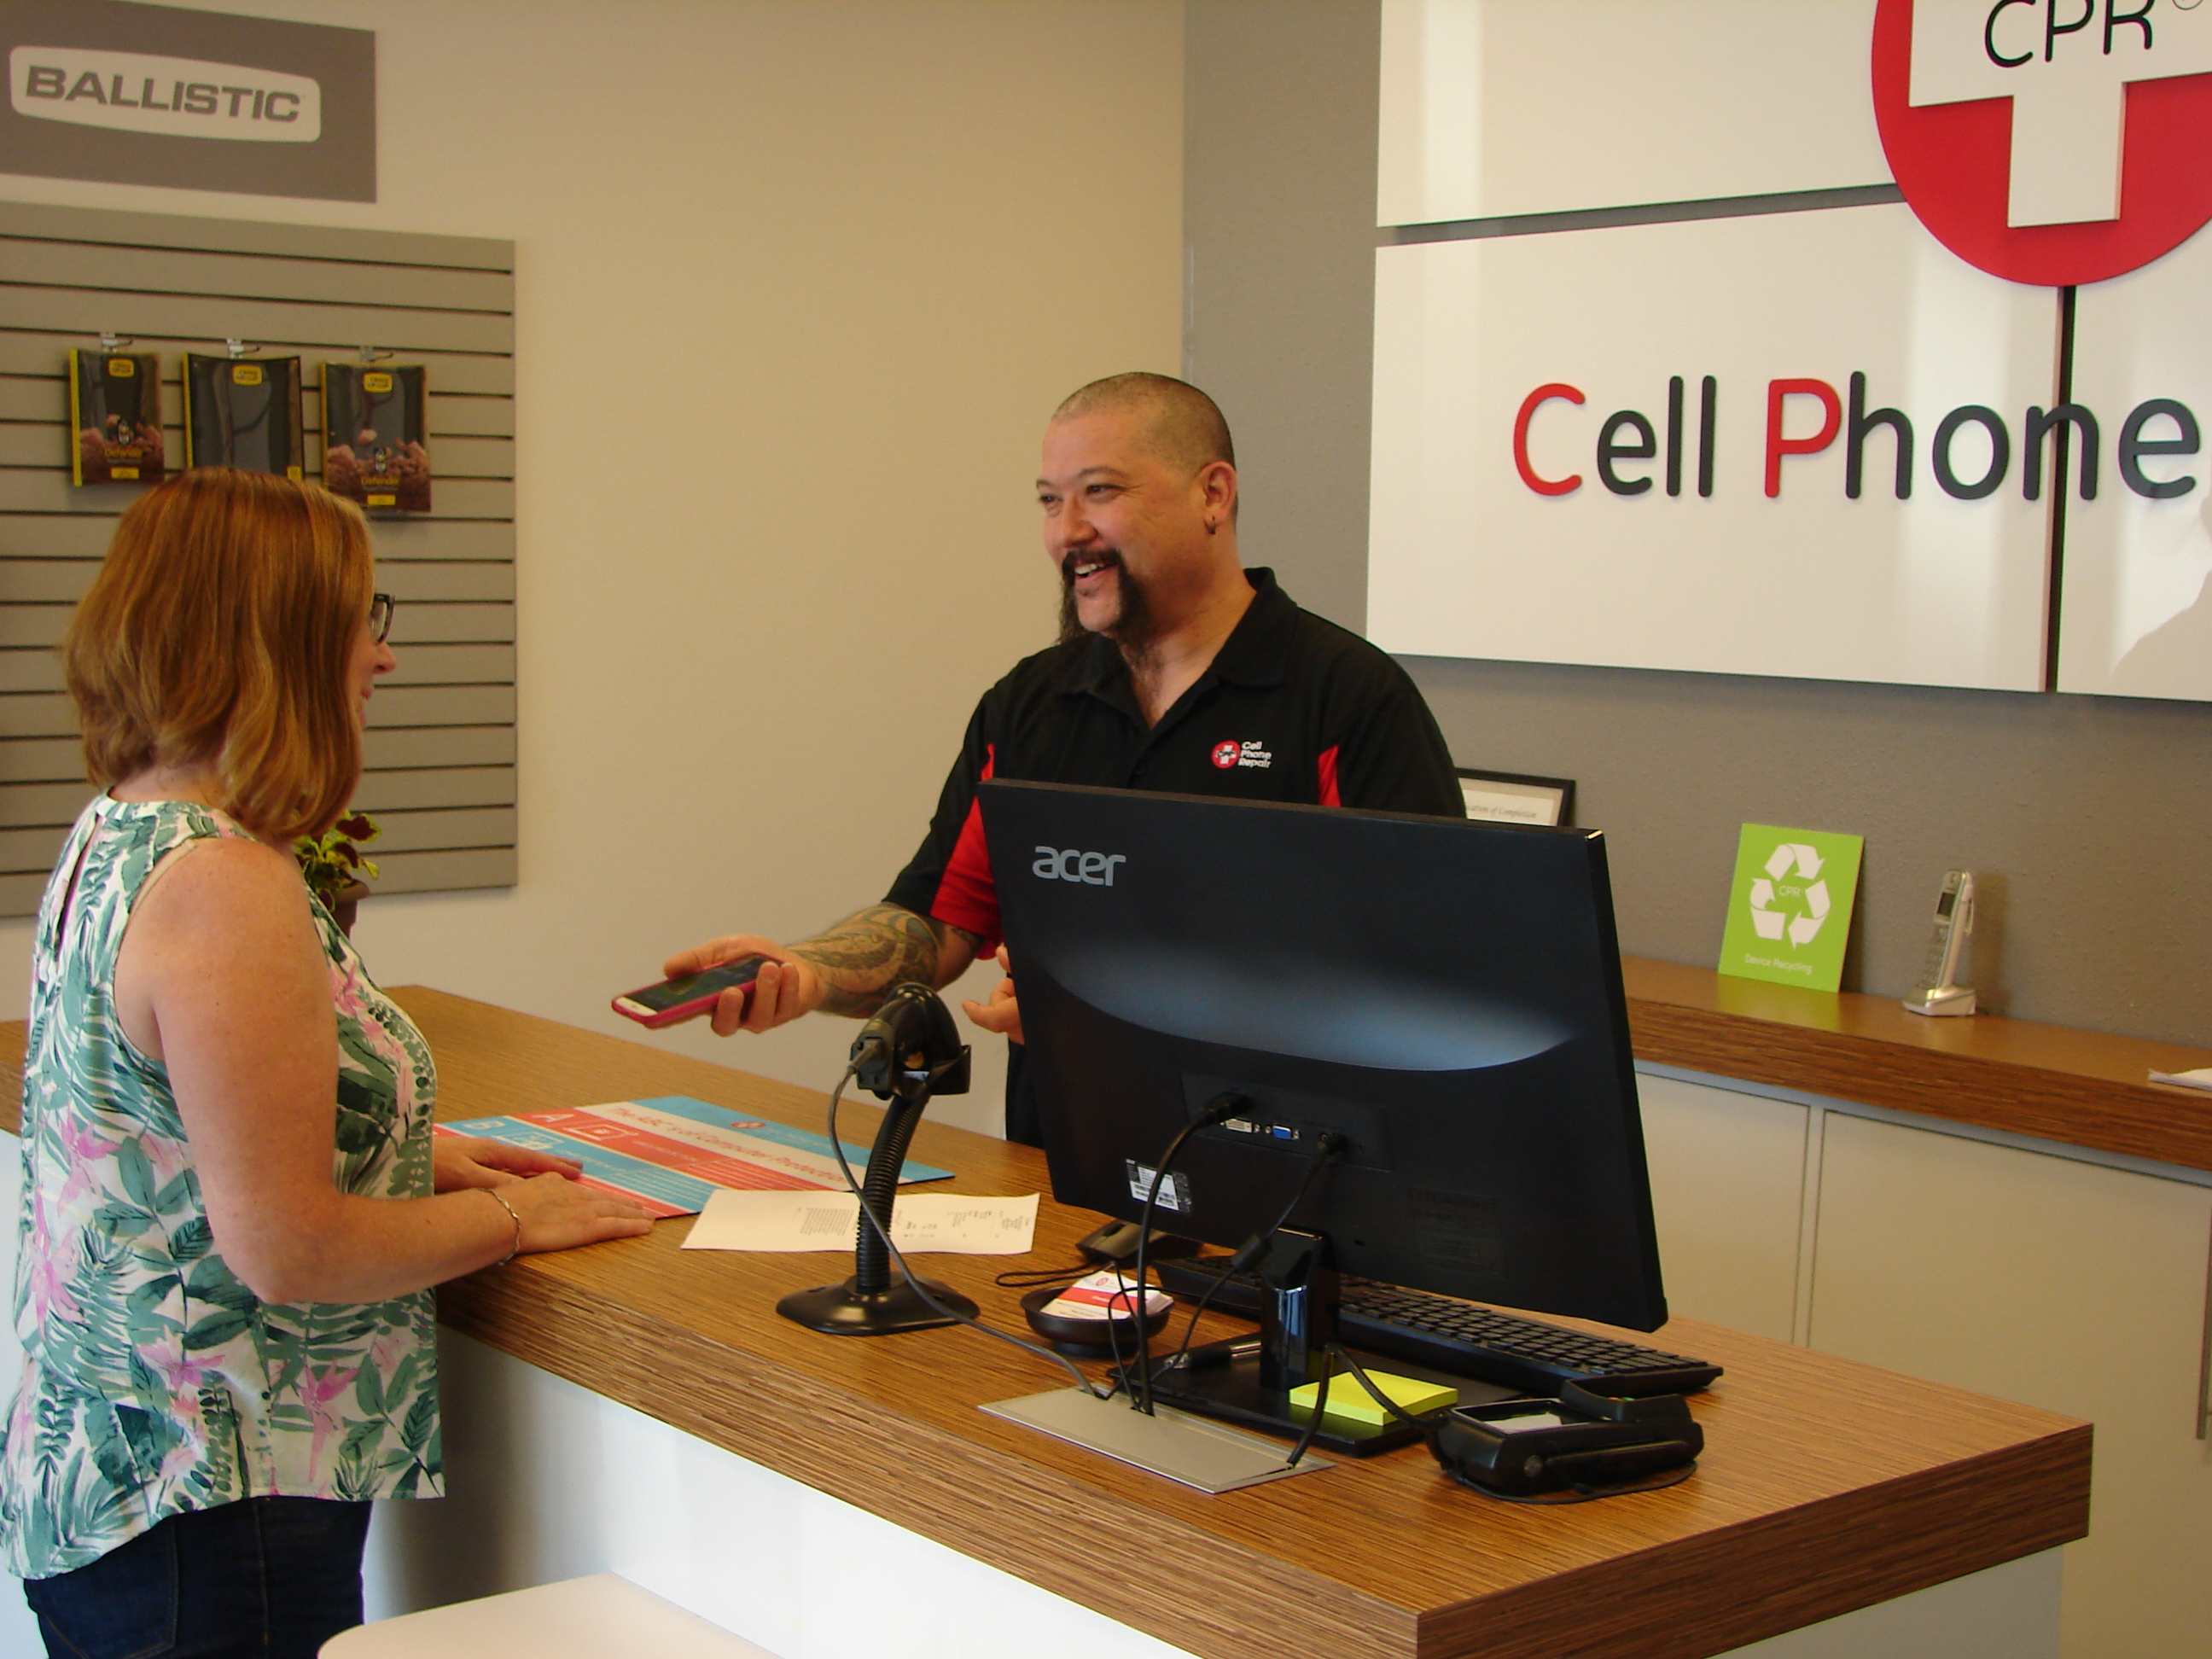 CPR Cell Phone Repair Silverdale image 2